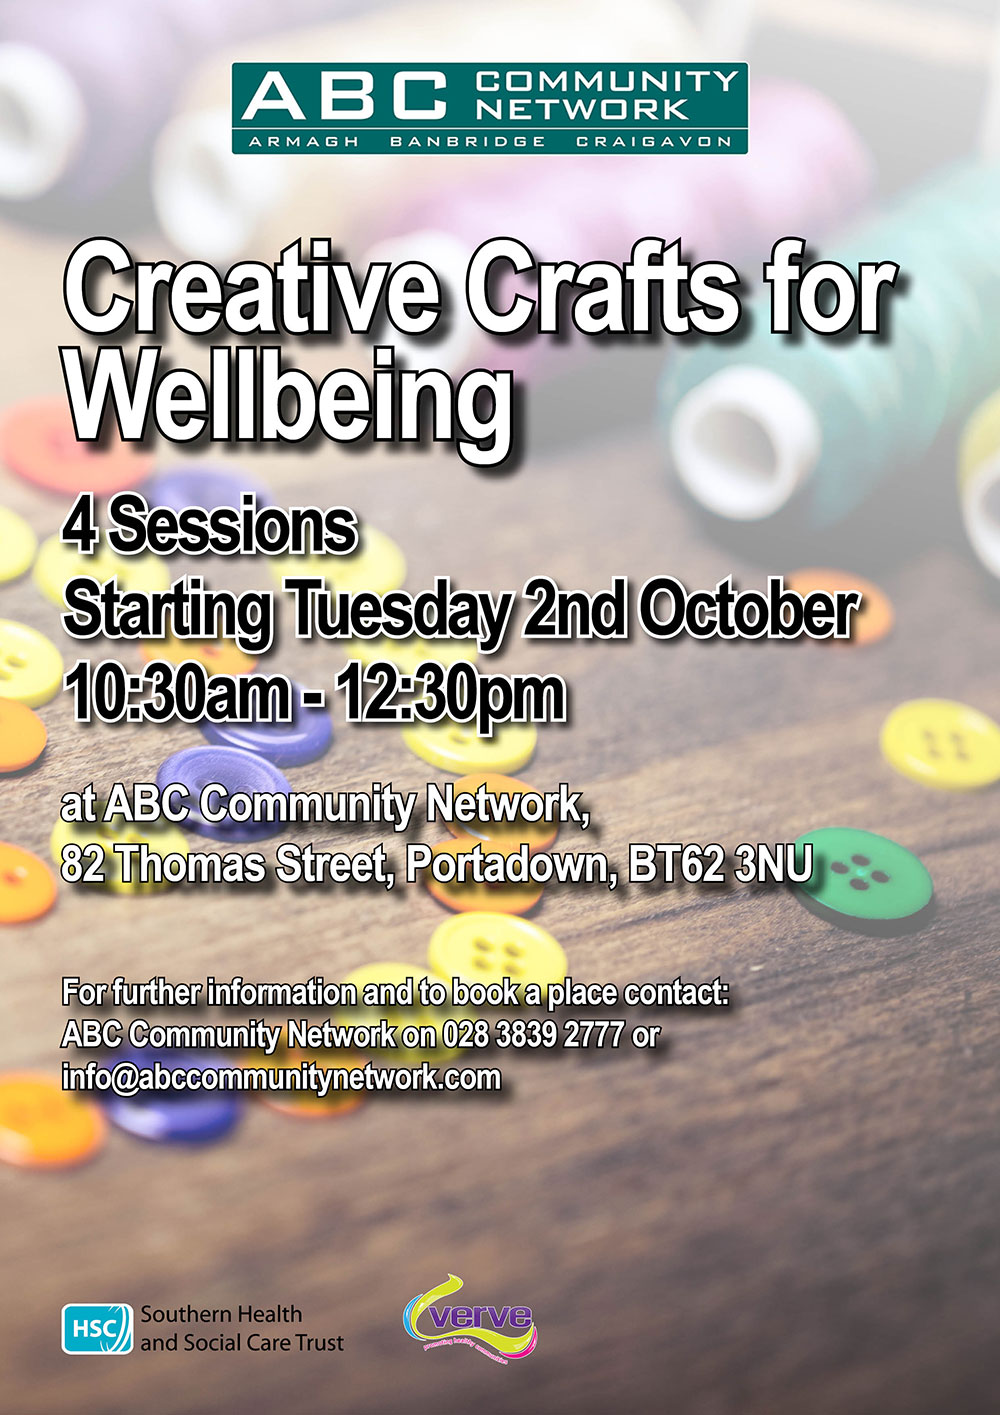 Creative Crafts for Wellbeing